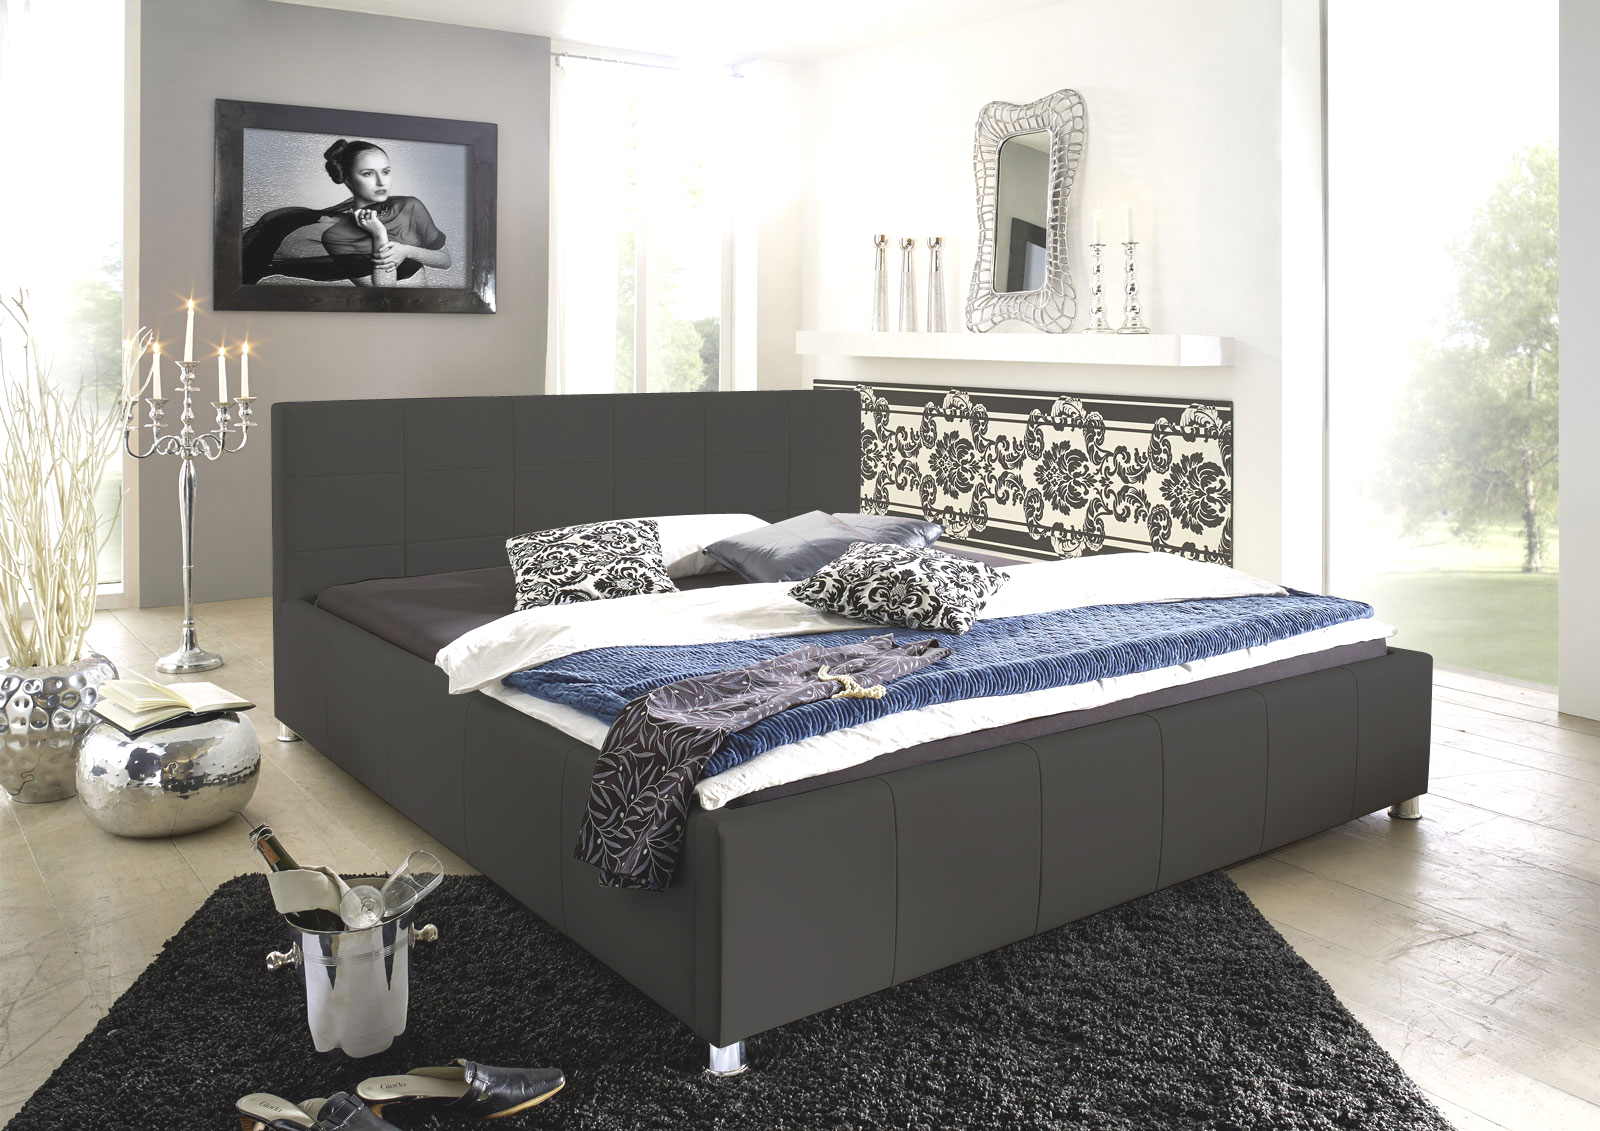 sam design bett 140 x 200 cm grau kira demn chst. Black Bedroom Furniture Sets. Home Design Ideas